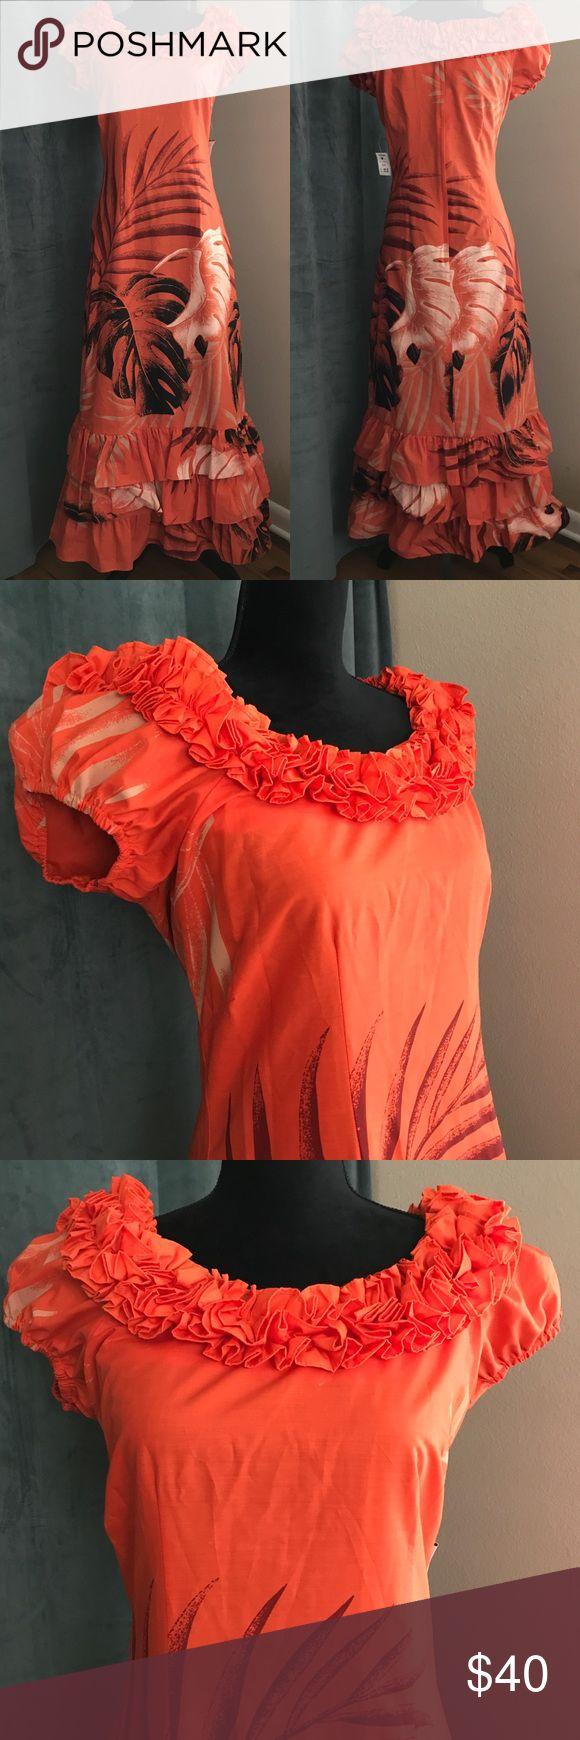 """NOS Vintage Orange Ruffled Hawaiian MuuMuu M 8/10 Stunning NOS vintage MuuMuu loaded with ruffles. Likely from the 70s or 80s. Tagged size 9/10. Bust 38""""-40"""". Waist up to 34"""". Length (from shoulder) 56"""". Cotton and polyester blend. Made by T & L MuuMuu Factory in Hawaii. Vintage Dresses Maxi"""